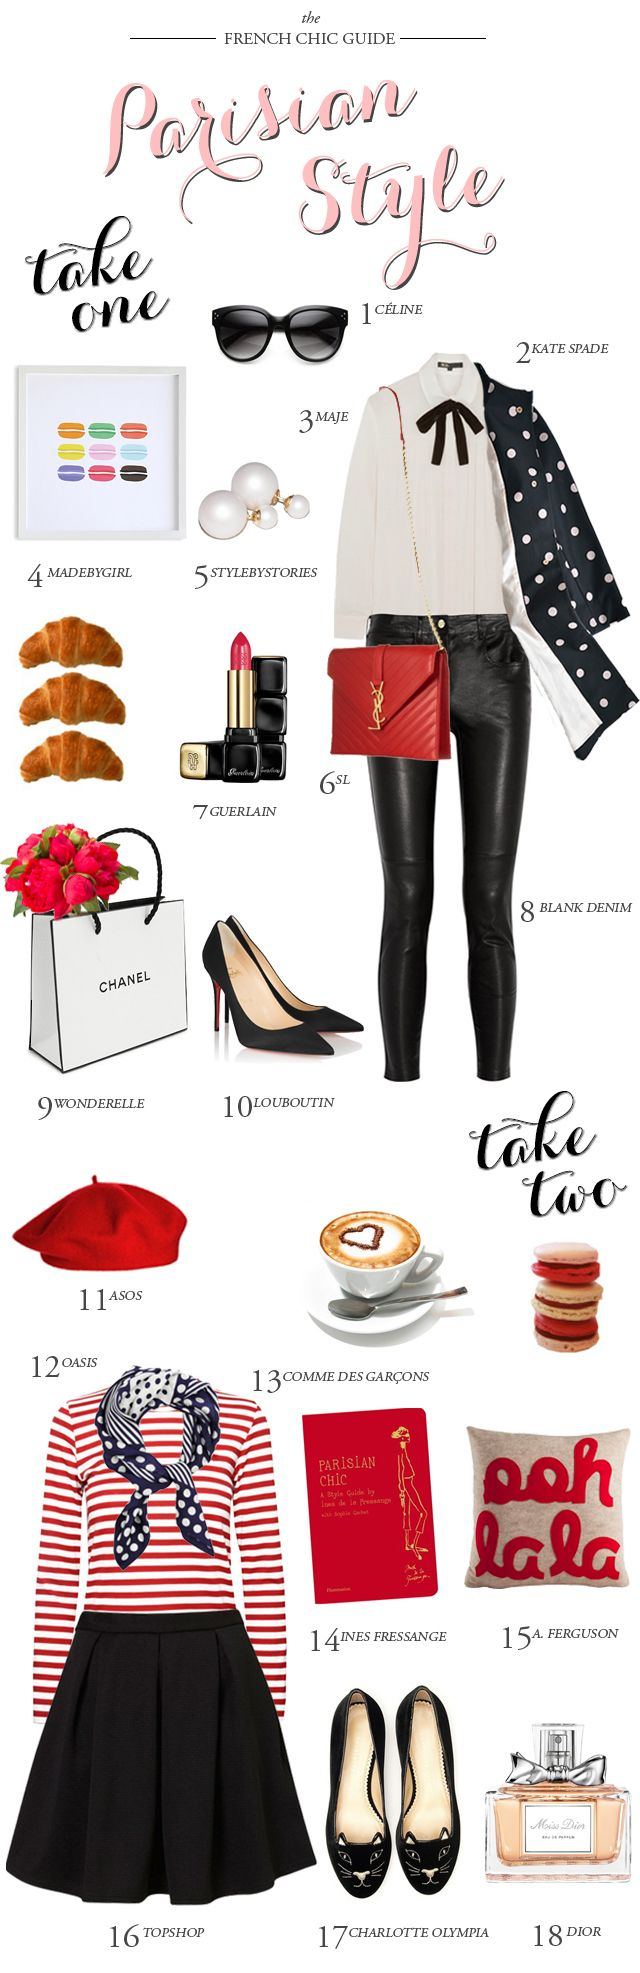 fashion: Parisian style